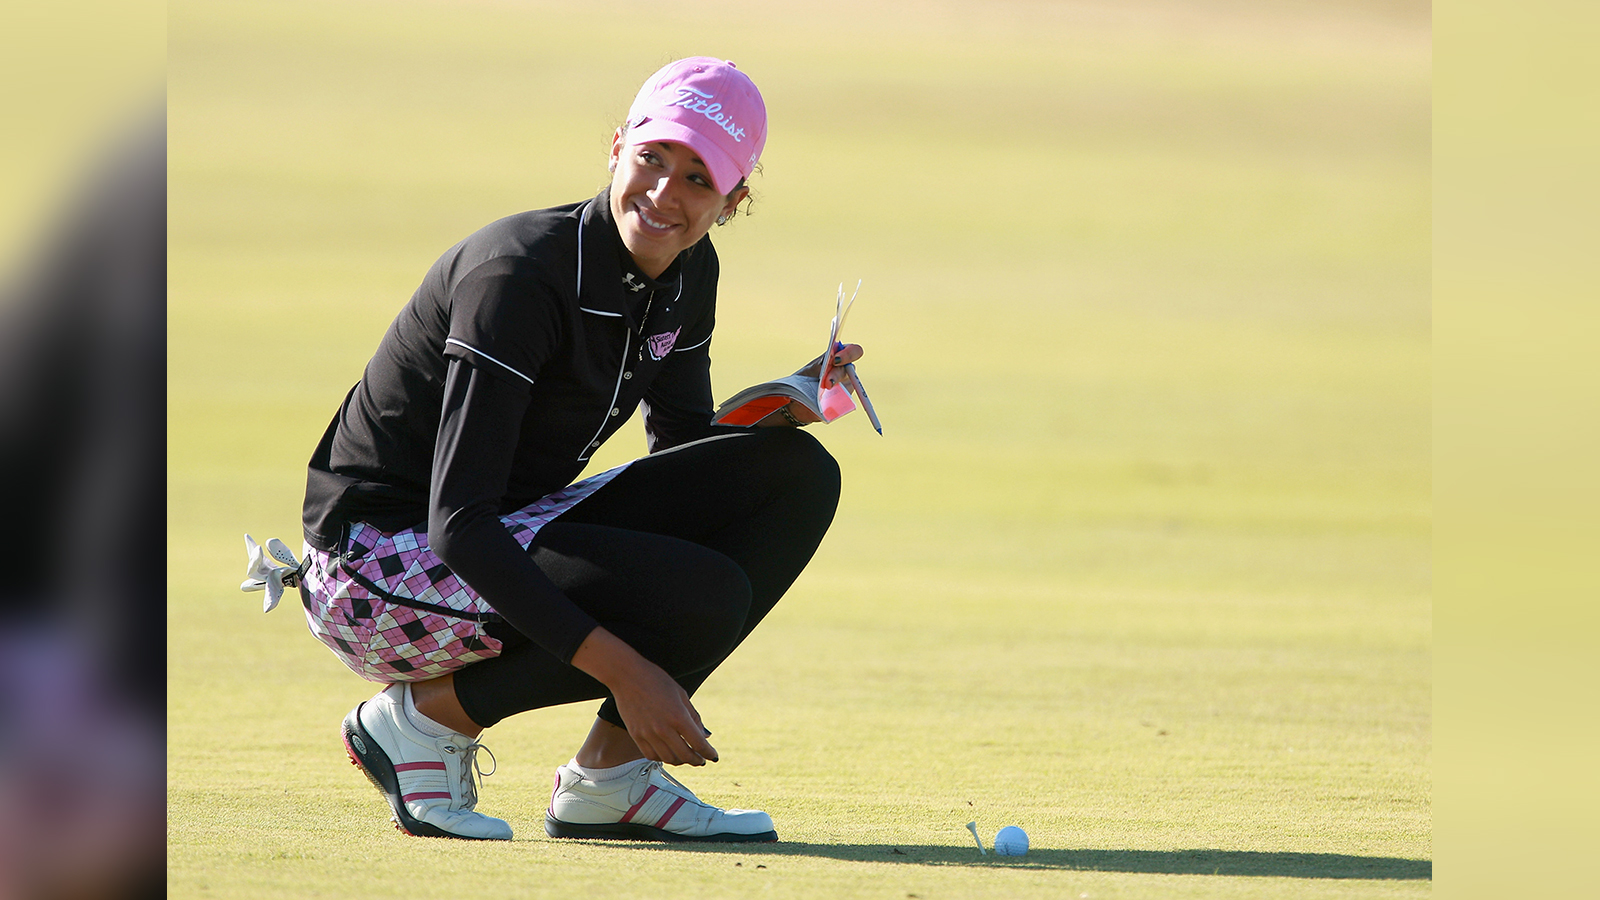 There's a dearth of Black players on the LPGA Tour. This woman wants that to change